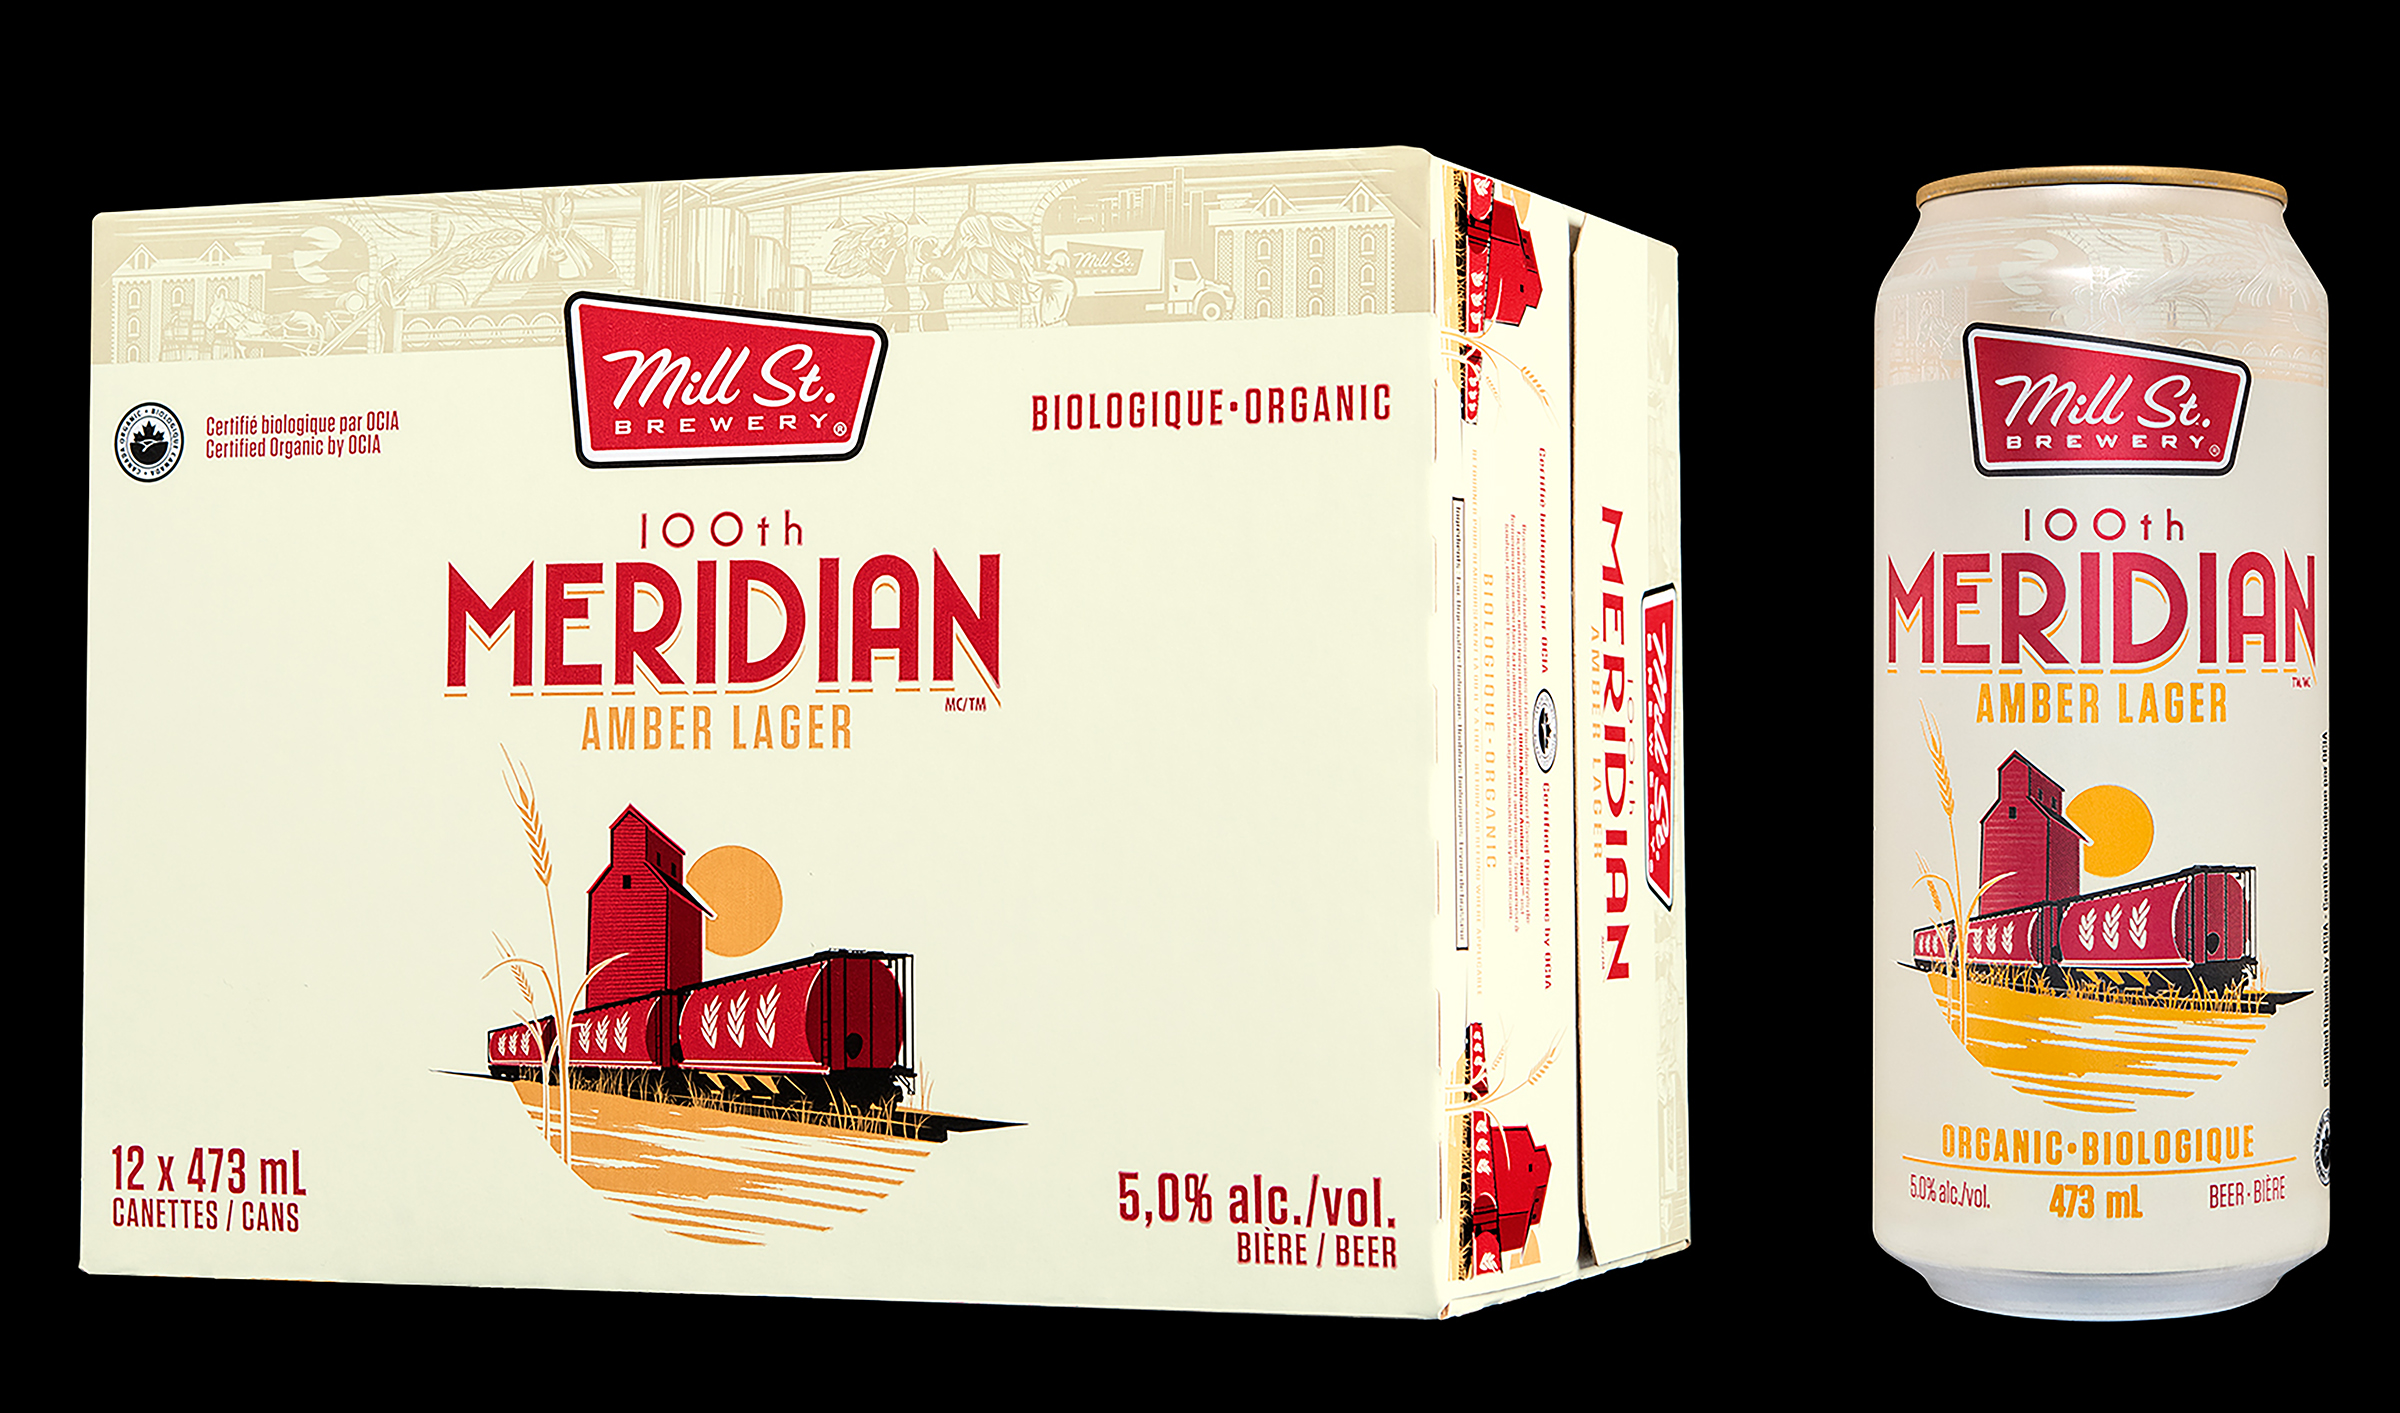 Packaging Design of 100th Meridian Amber Lager, for Mill Street Brewery